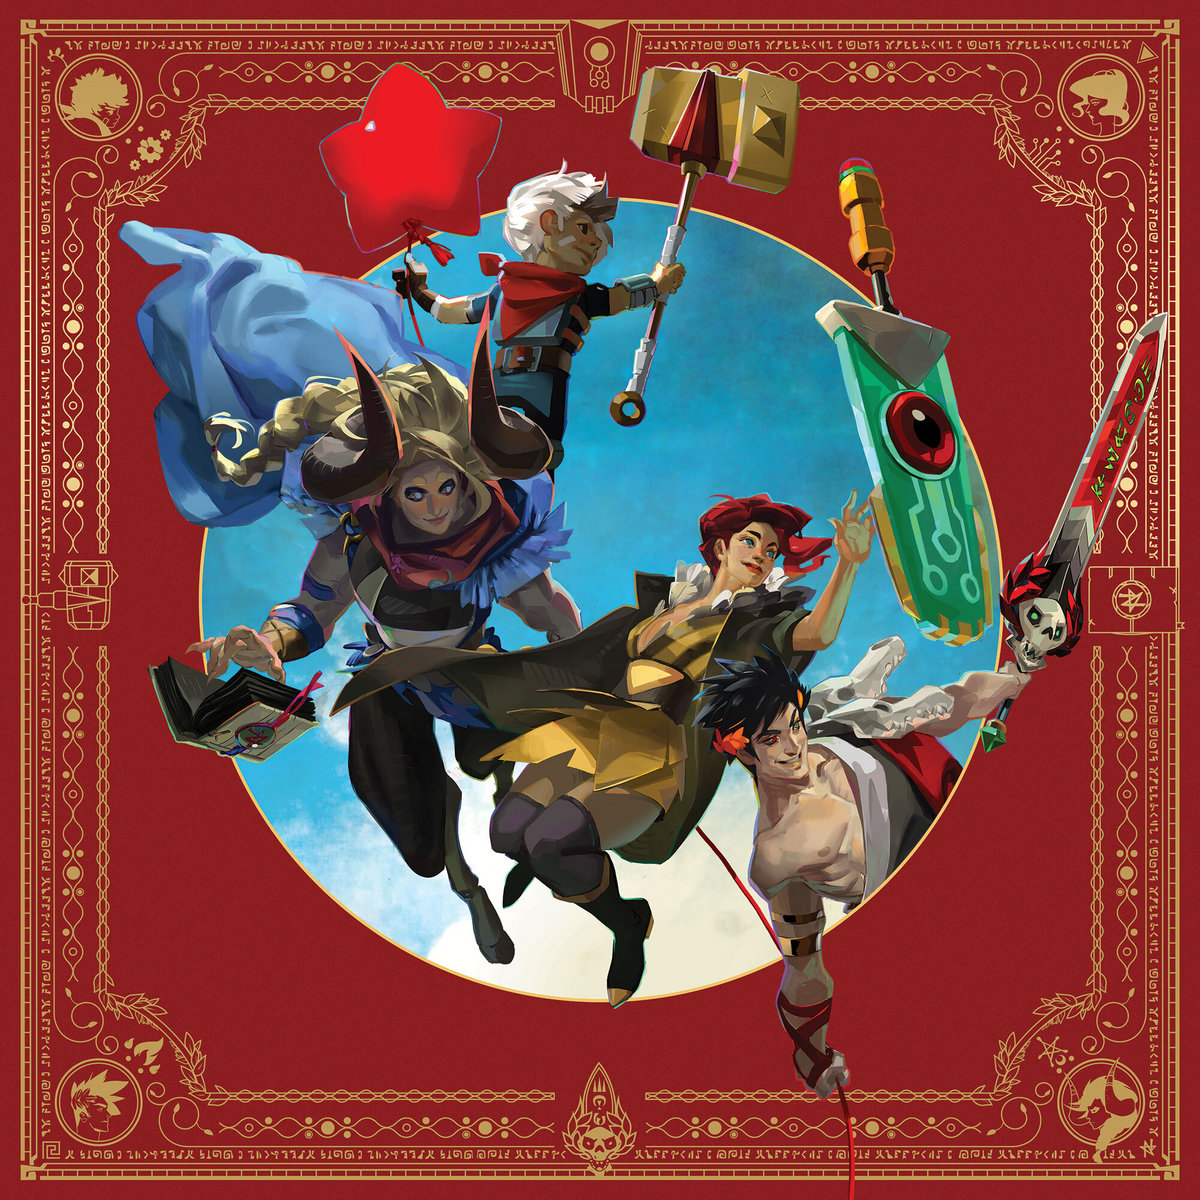 Songs of Supergiant Games Album Cover